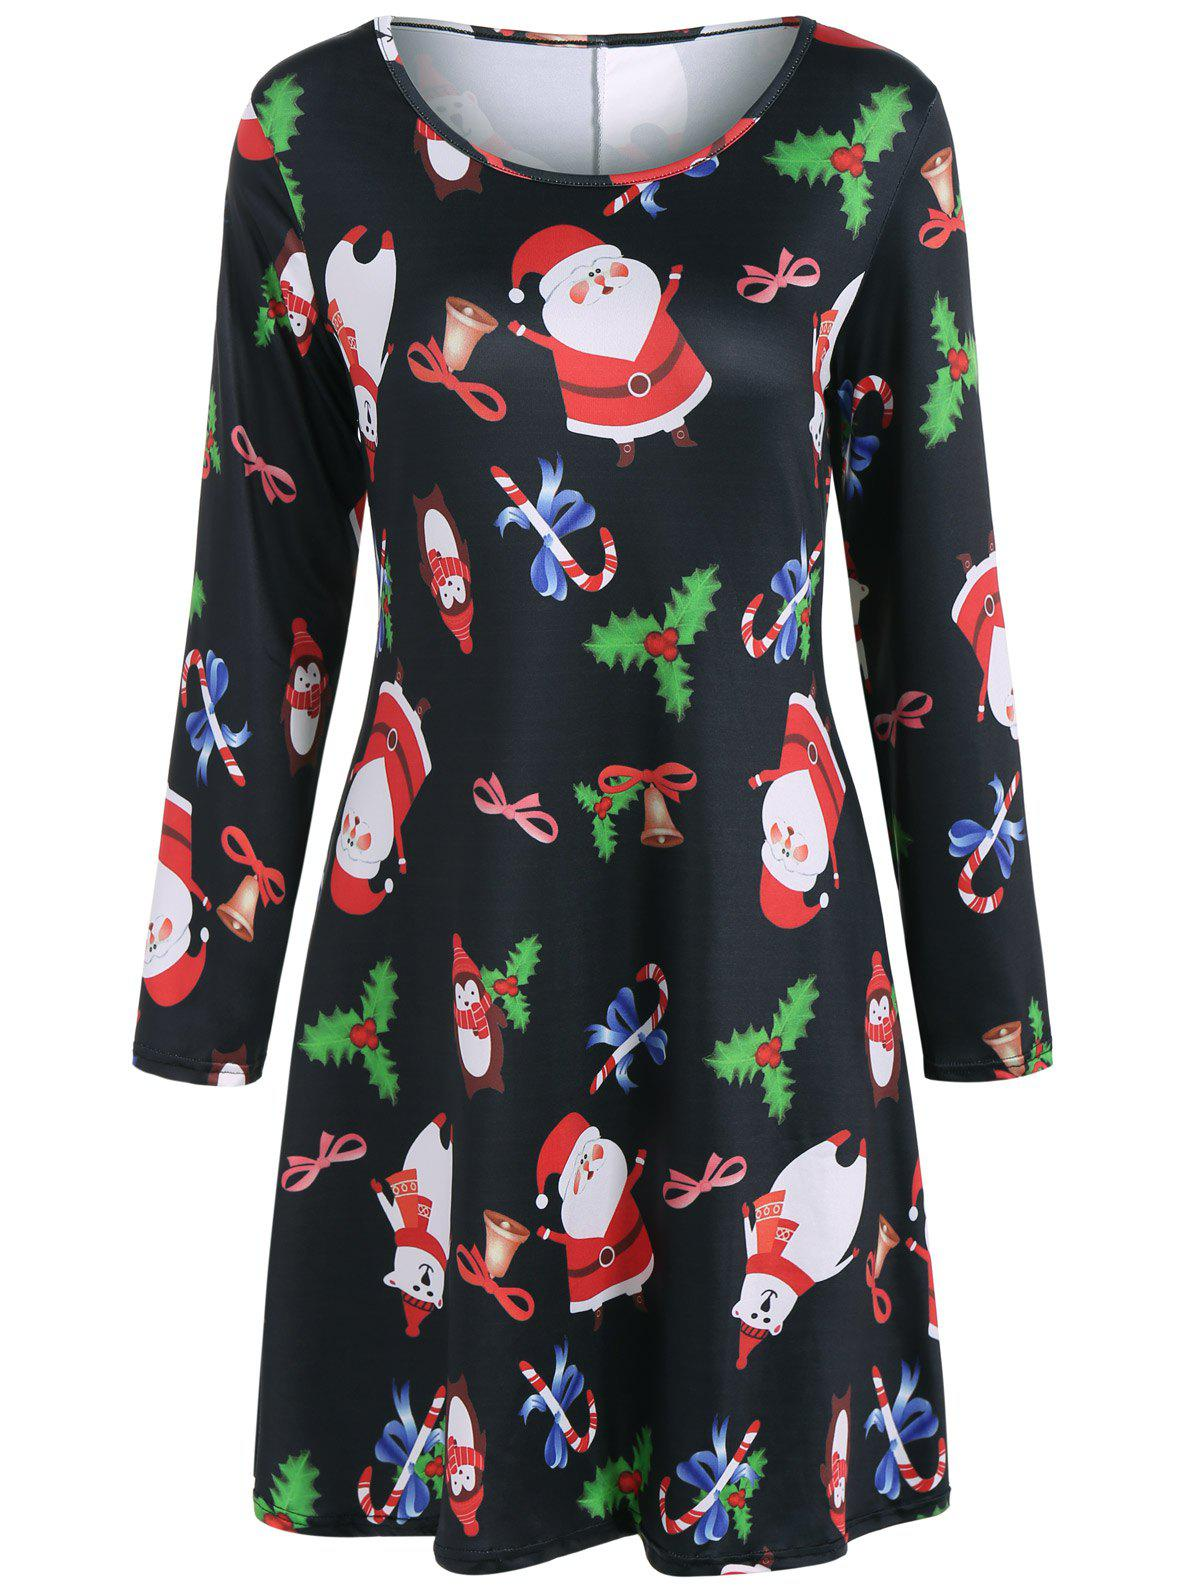 Shop Christmas Santa Claus Print Dress